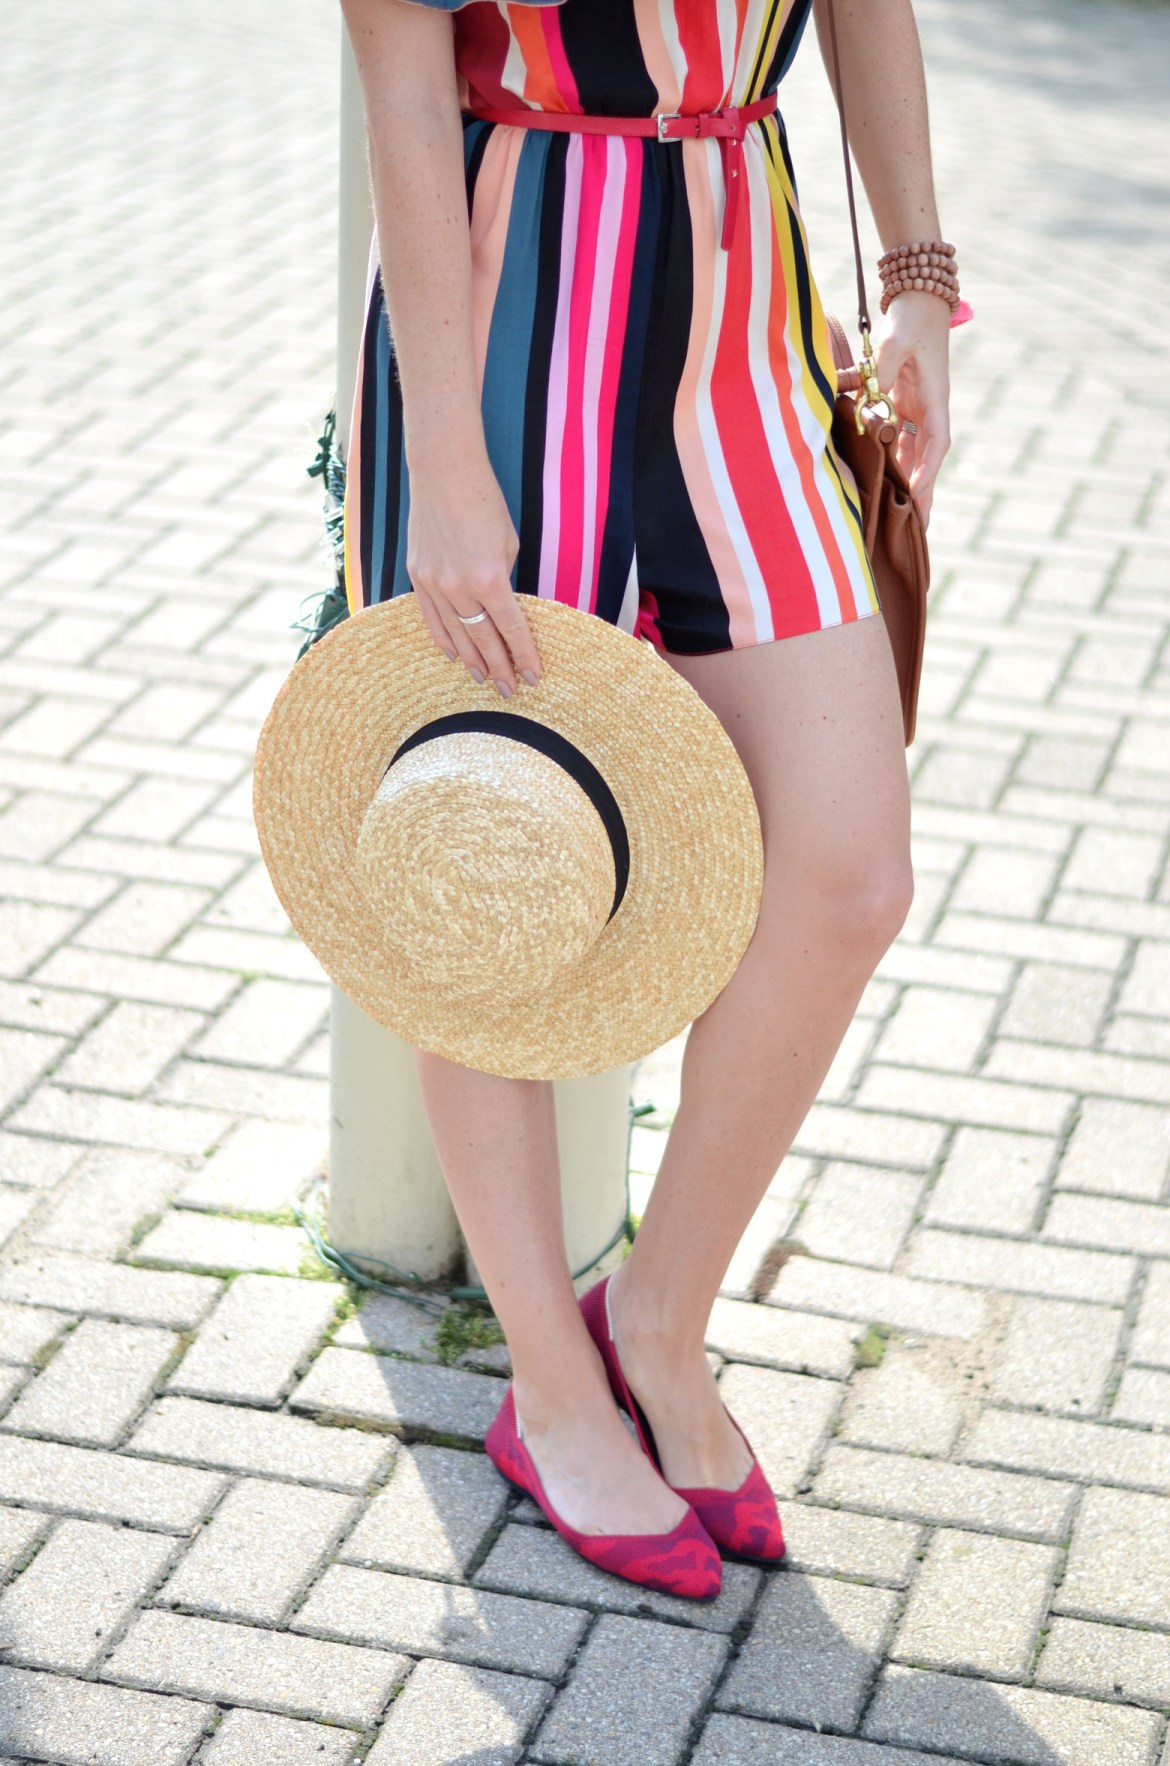 stefanie schoen of the style safari wears red camo seemless knit Rothys flats and Striped ASOS romper